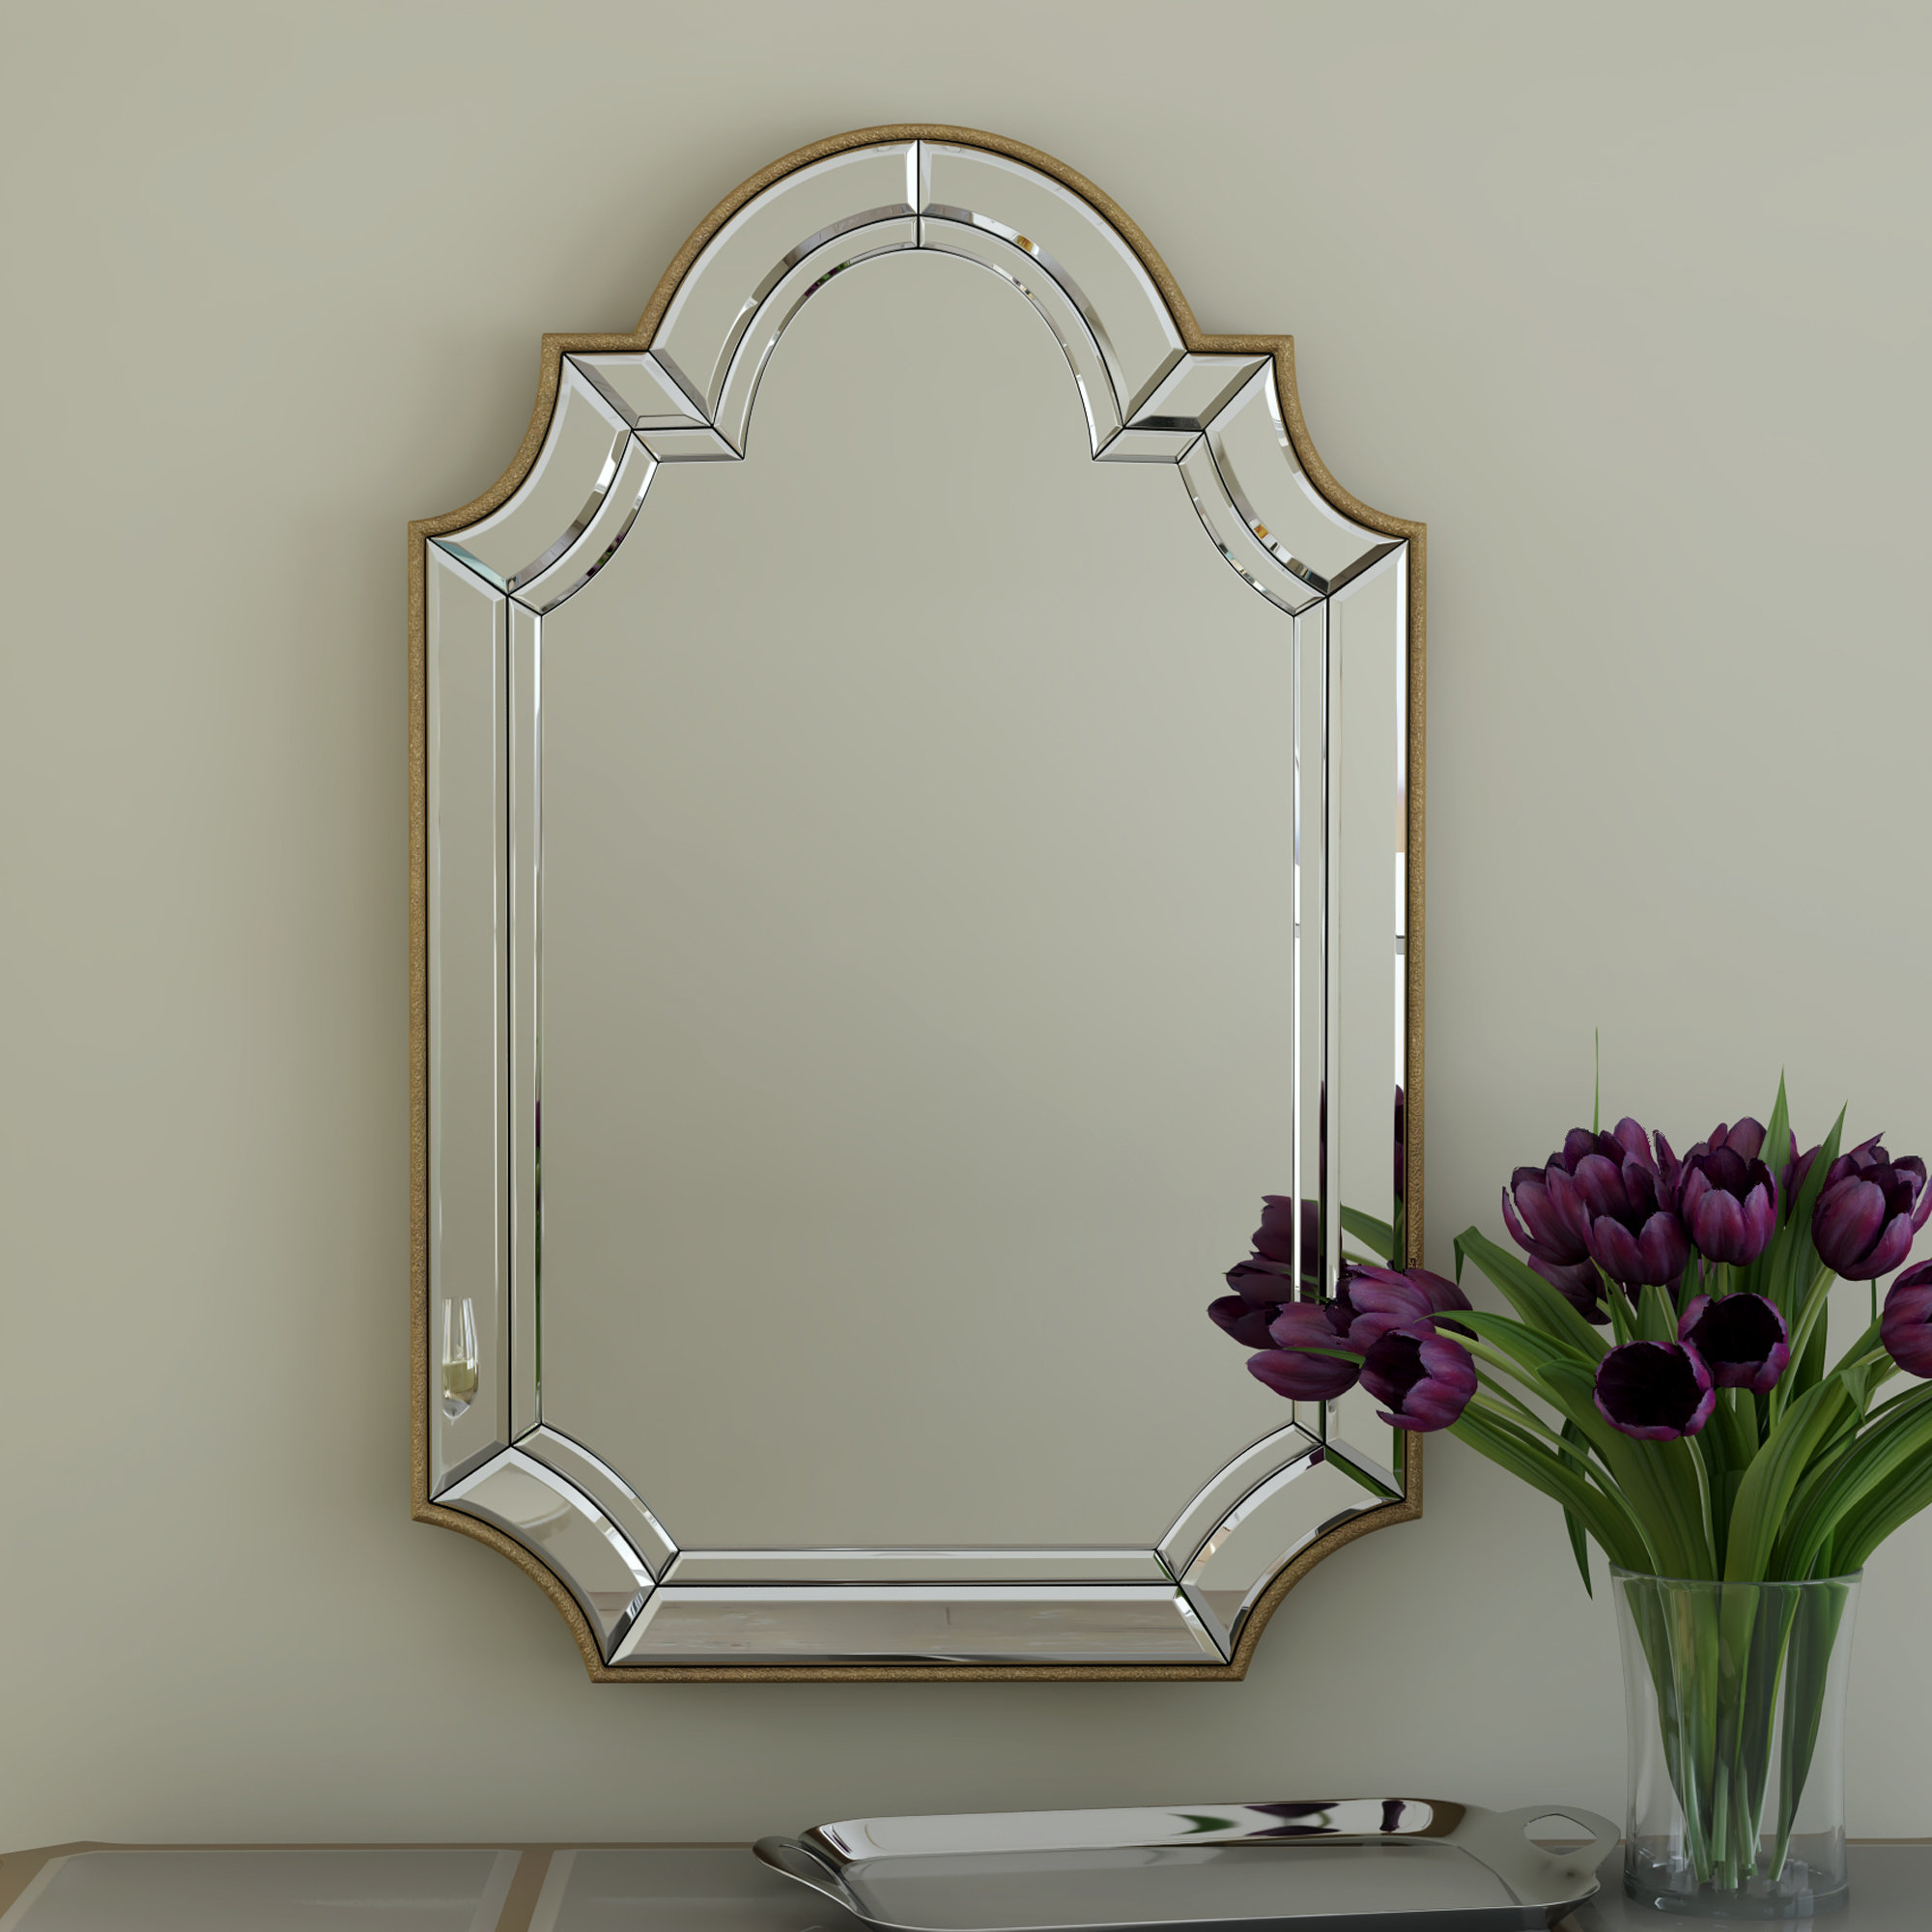 Arch/crowned Top Champagne Wall Mirror Pertaining To Fashionable Arch Vertical Wall Mirrors (Gallery 11 of 20)